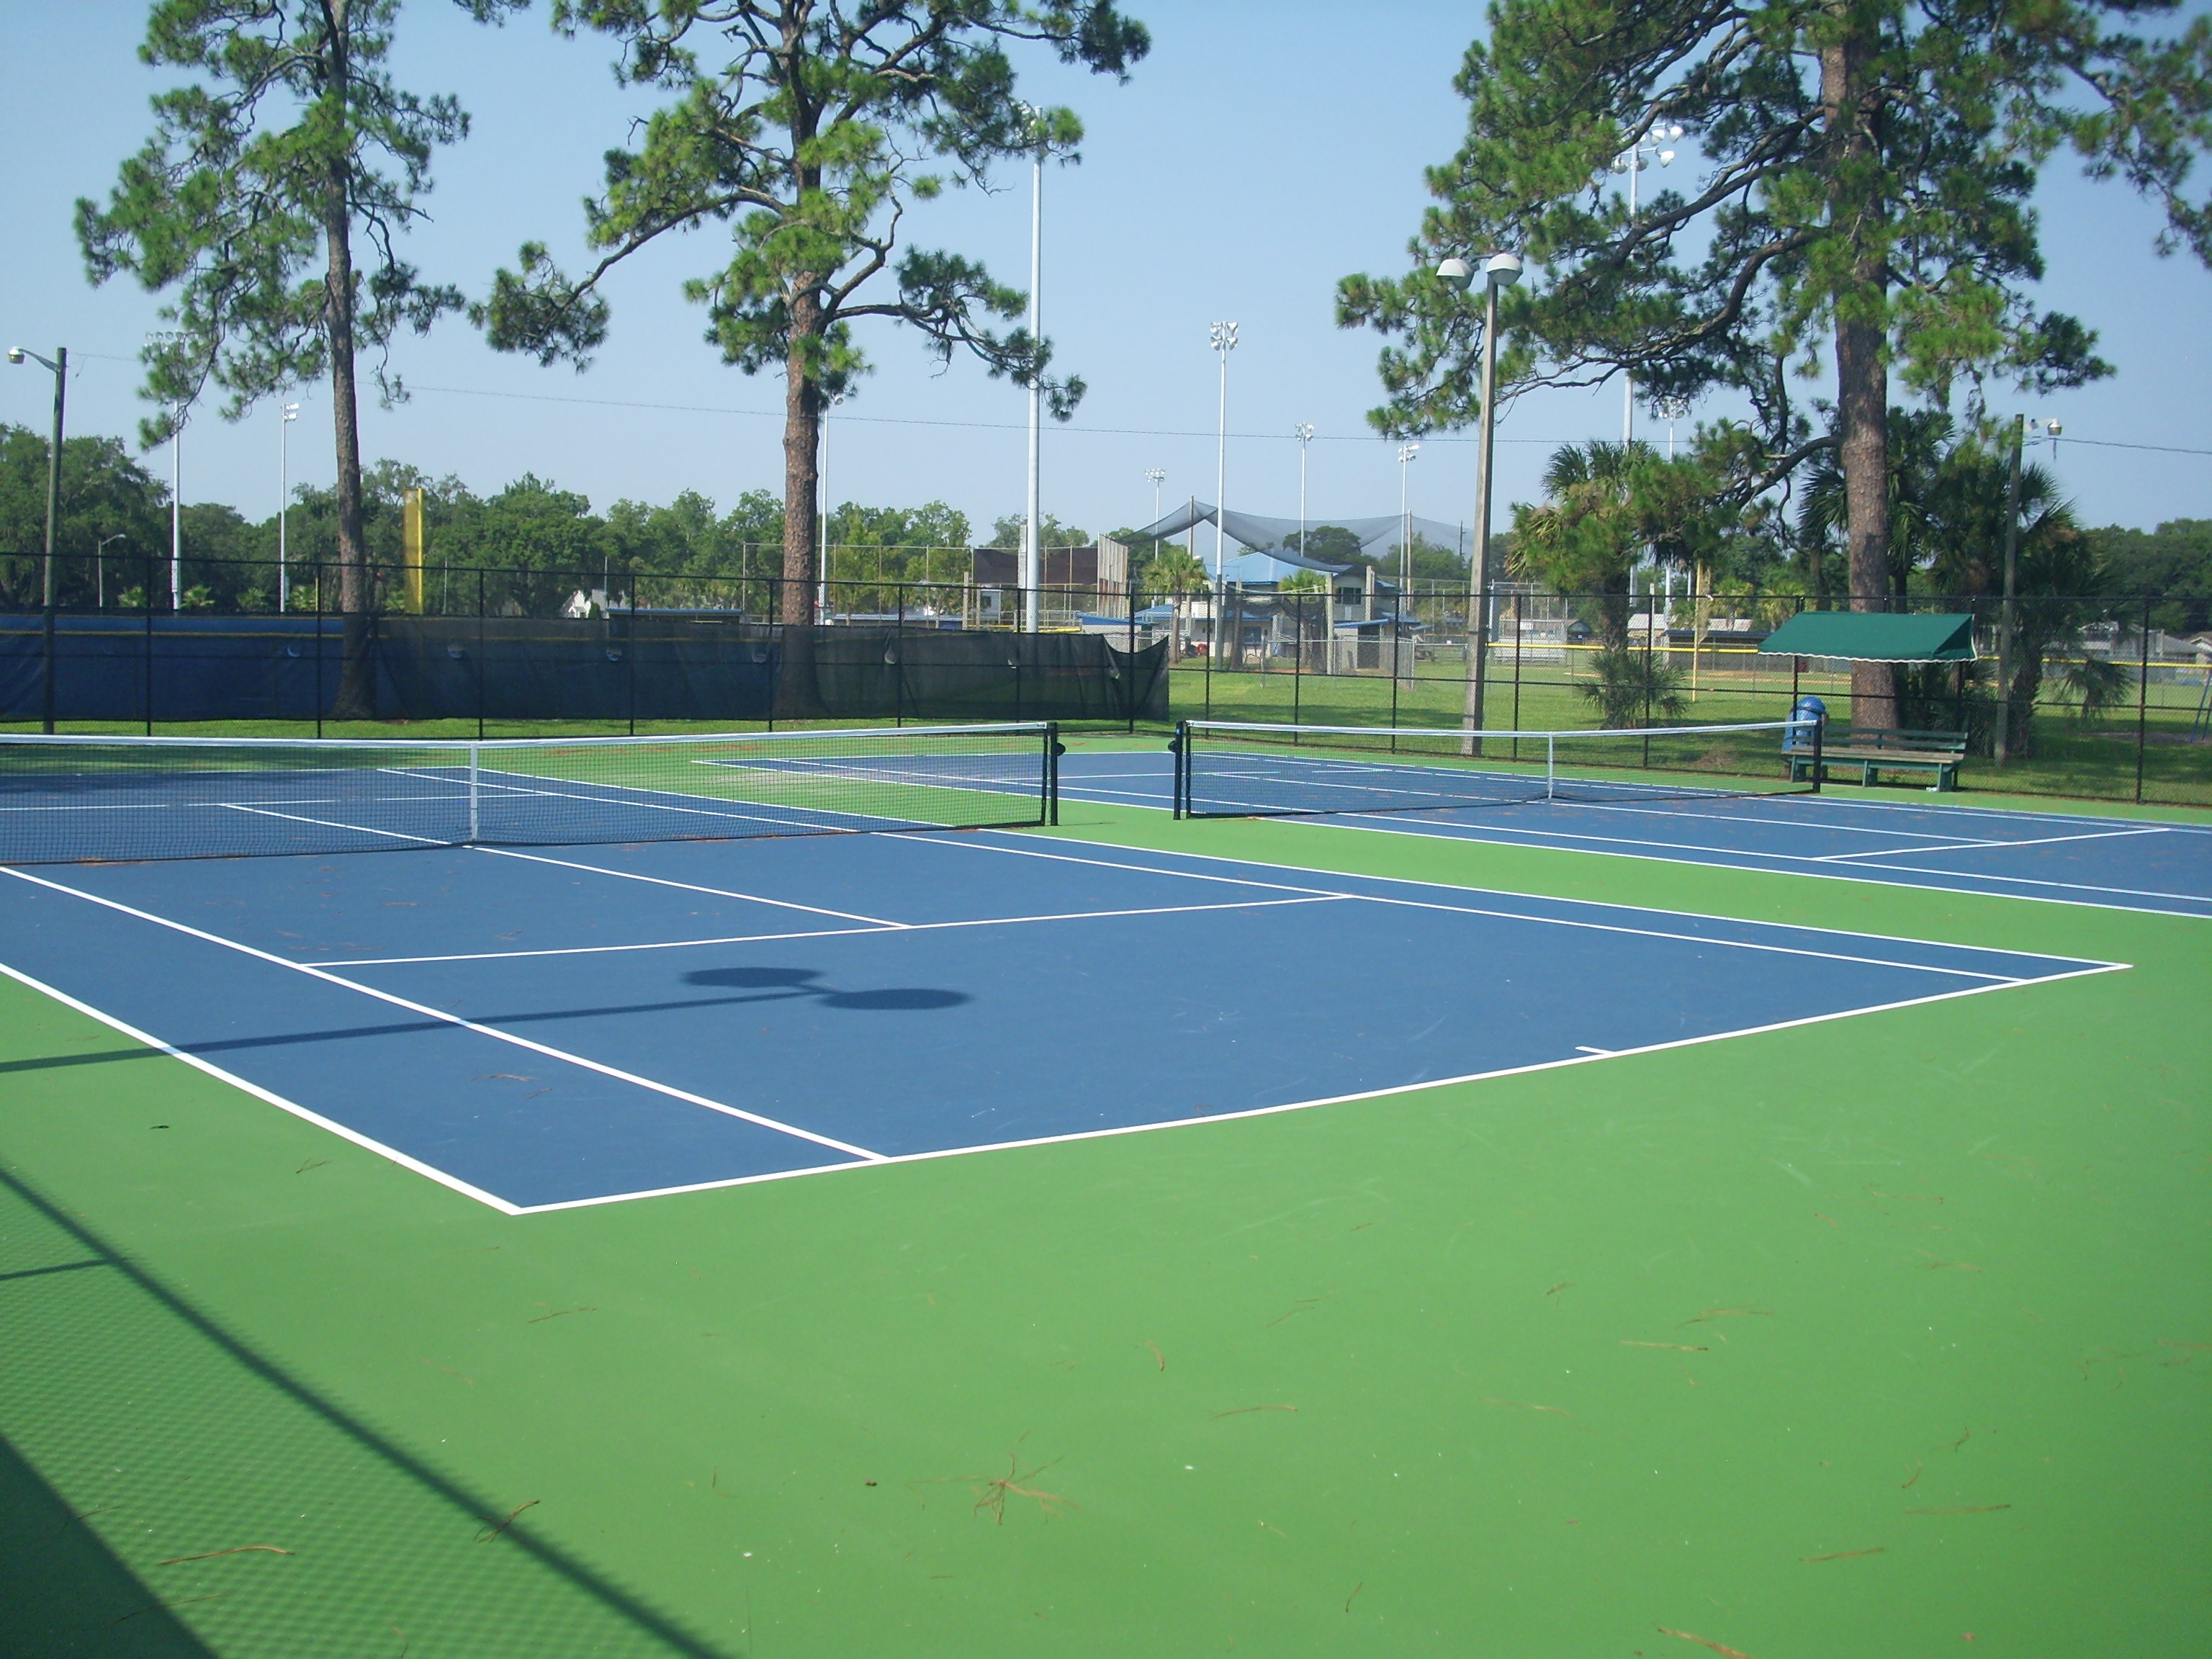 CP Tennis Courts 3 and 4